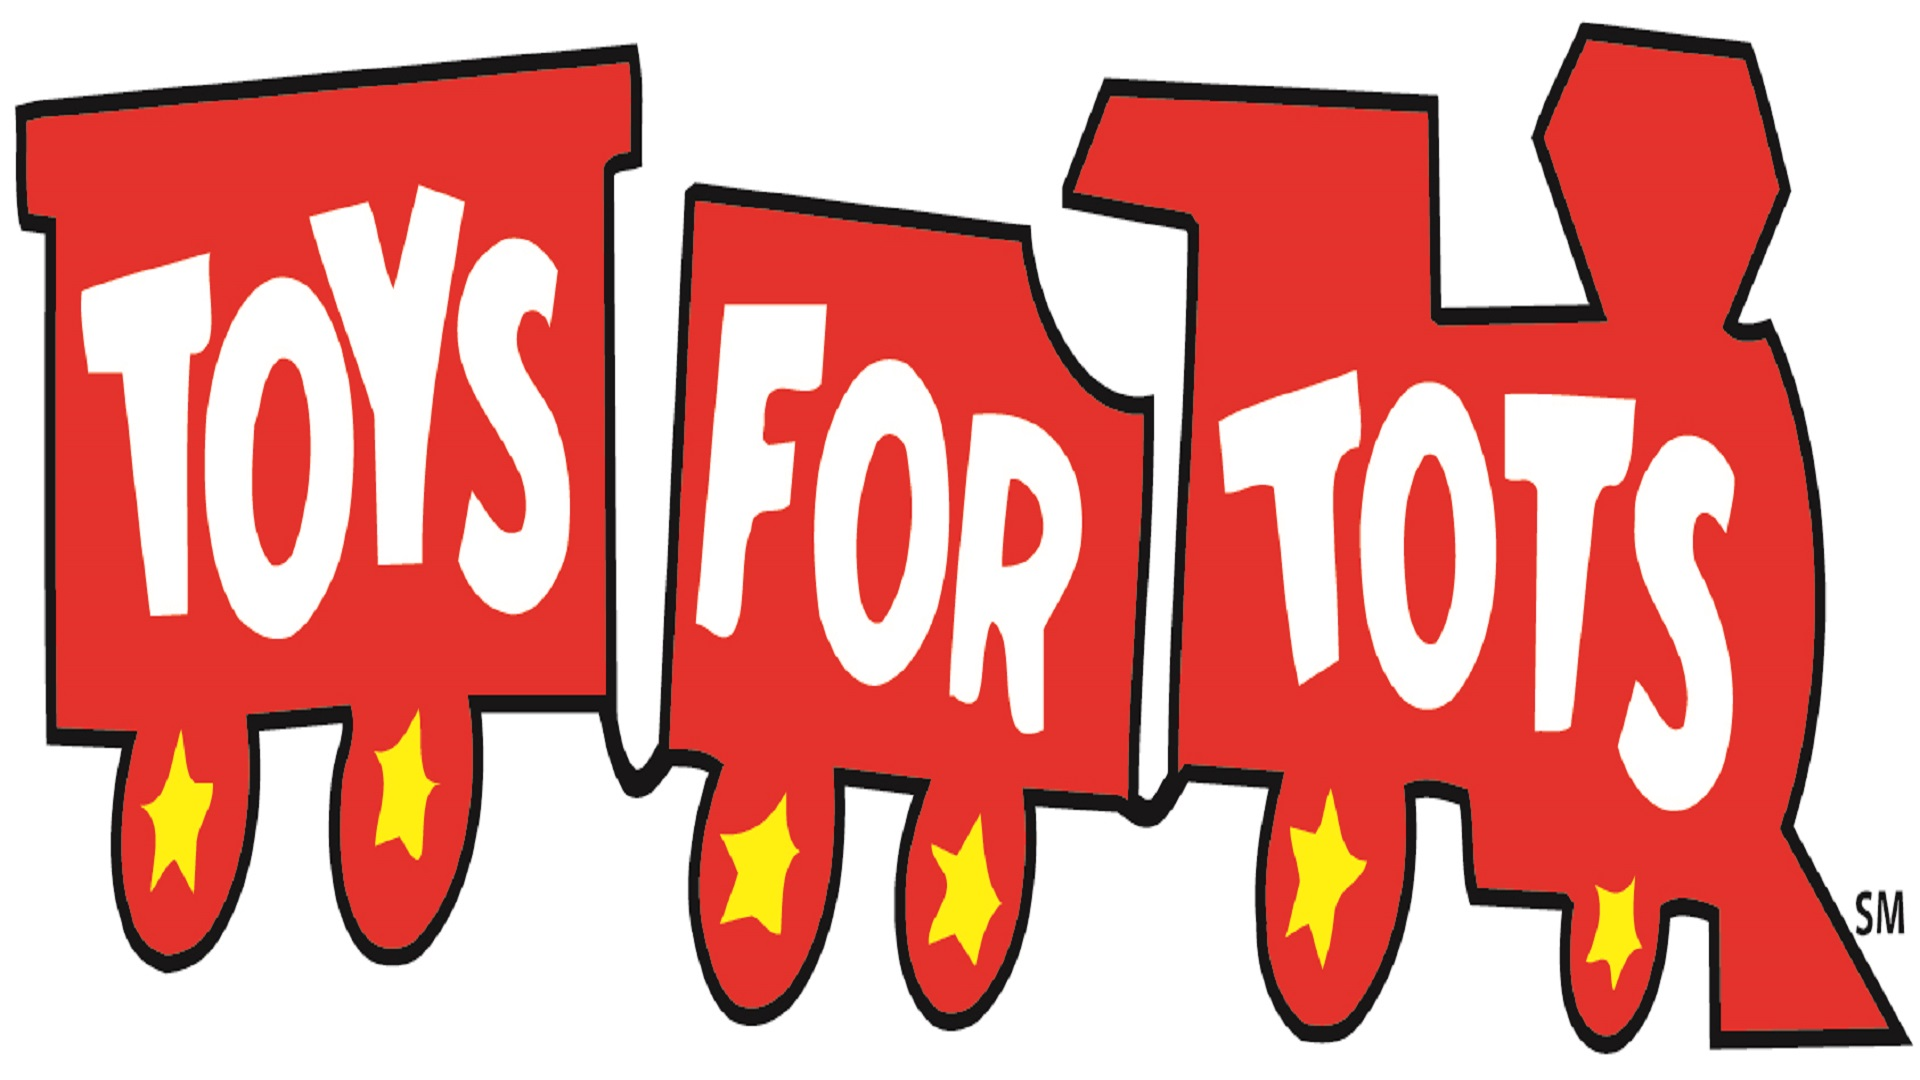 Artwork Toys For Tots : Toys for tots logo vector cliparts